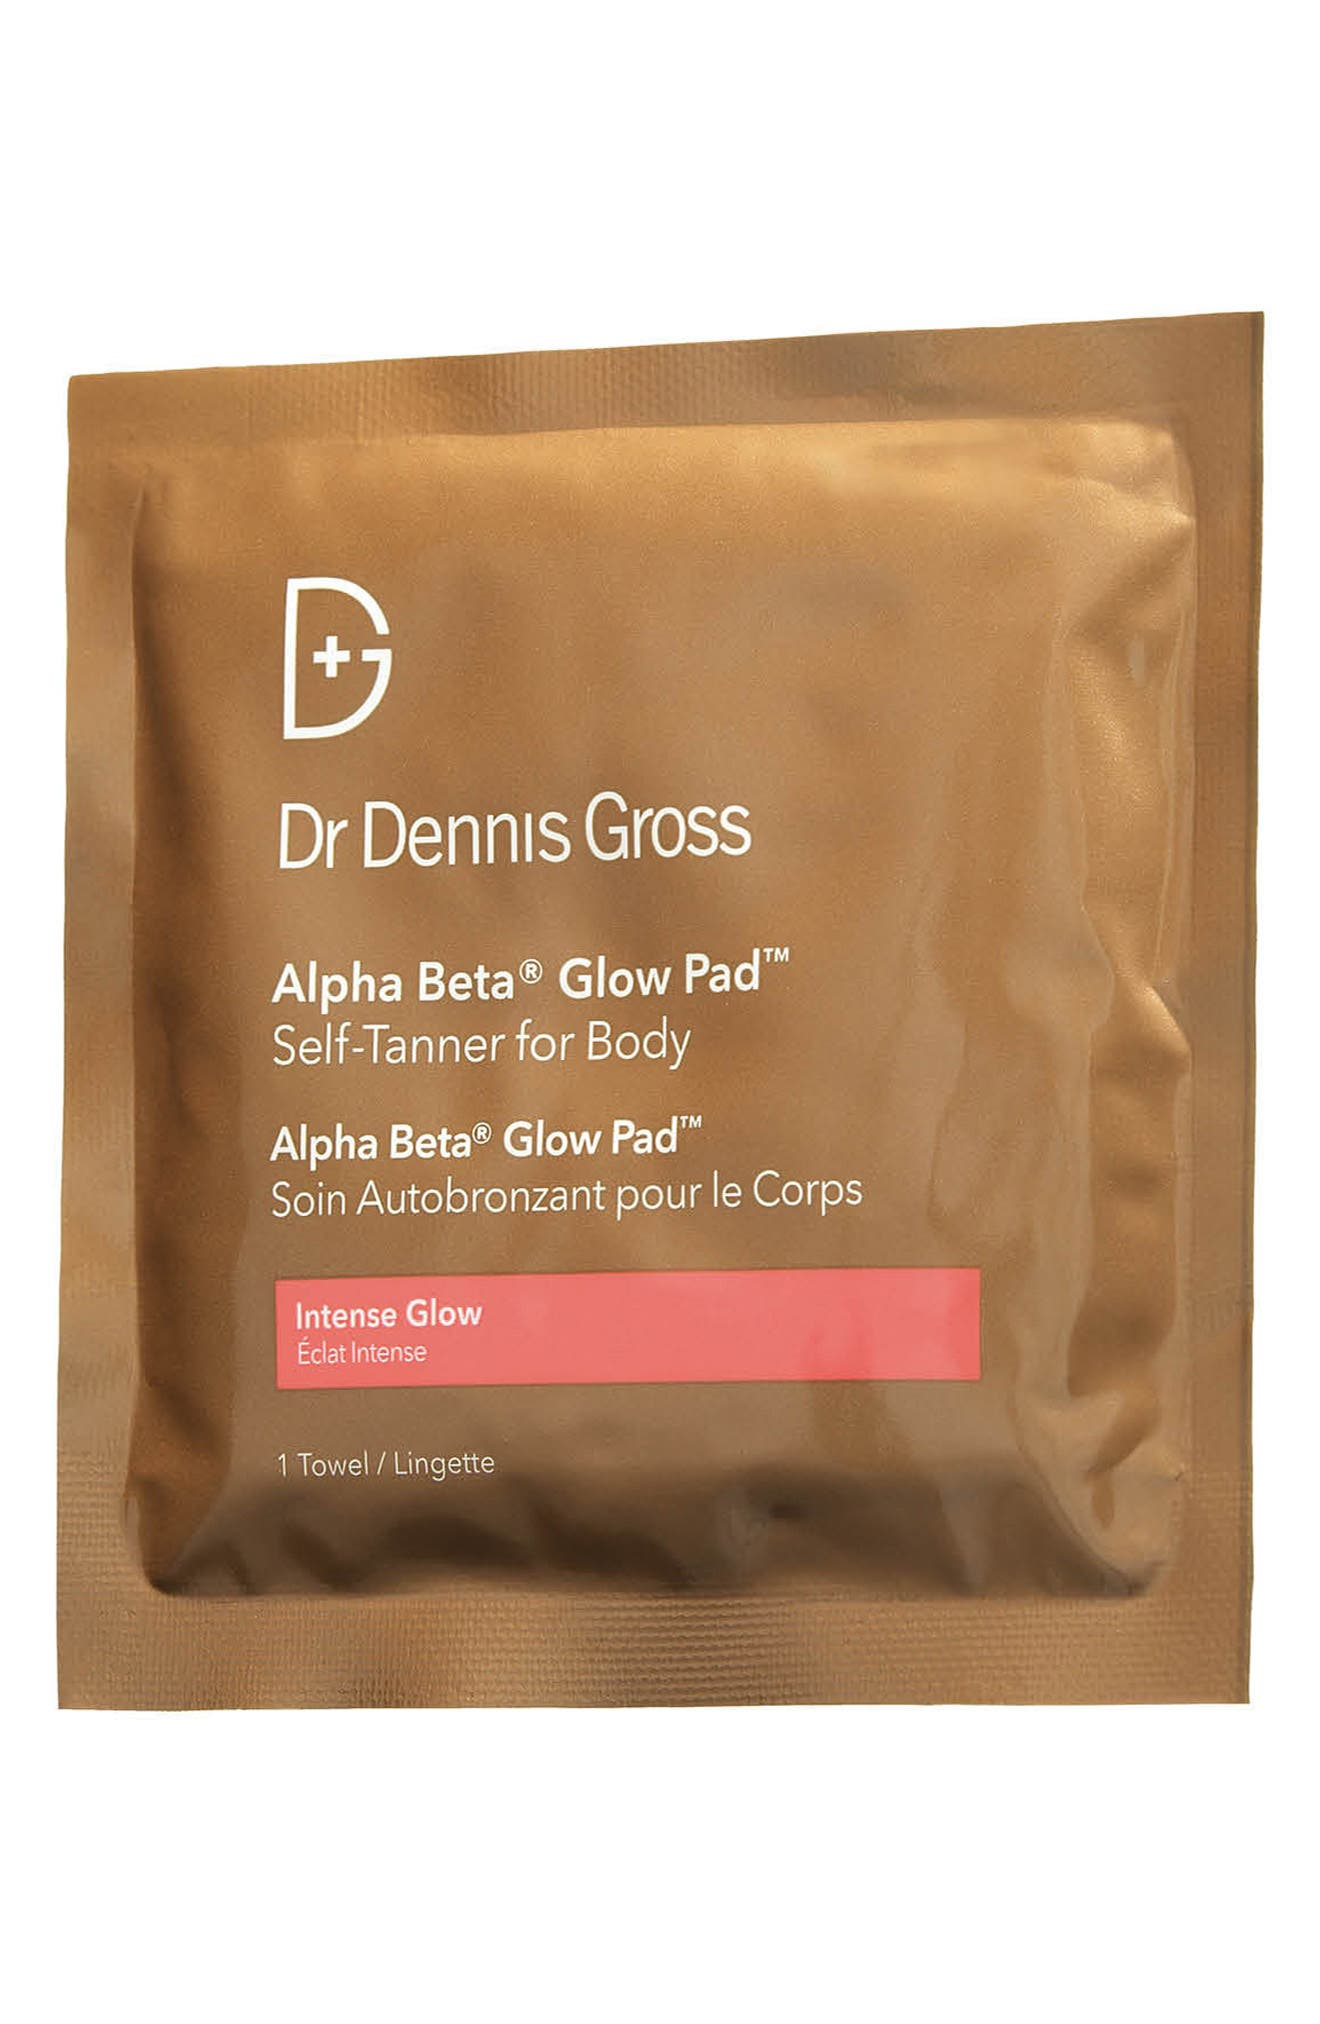 'Alpha Beta<sup>®</sup> Glow Pads' Exfoliating Anti-Aging Self-Tanner for Body,                         Main,                         color, NO COLOR